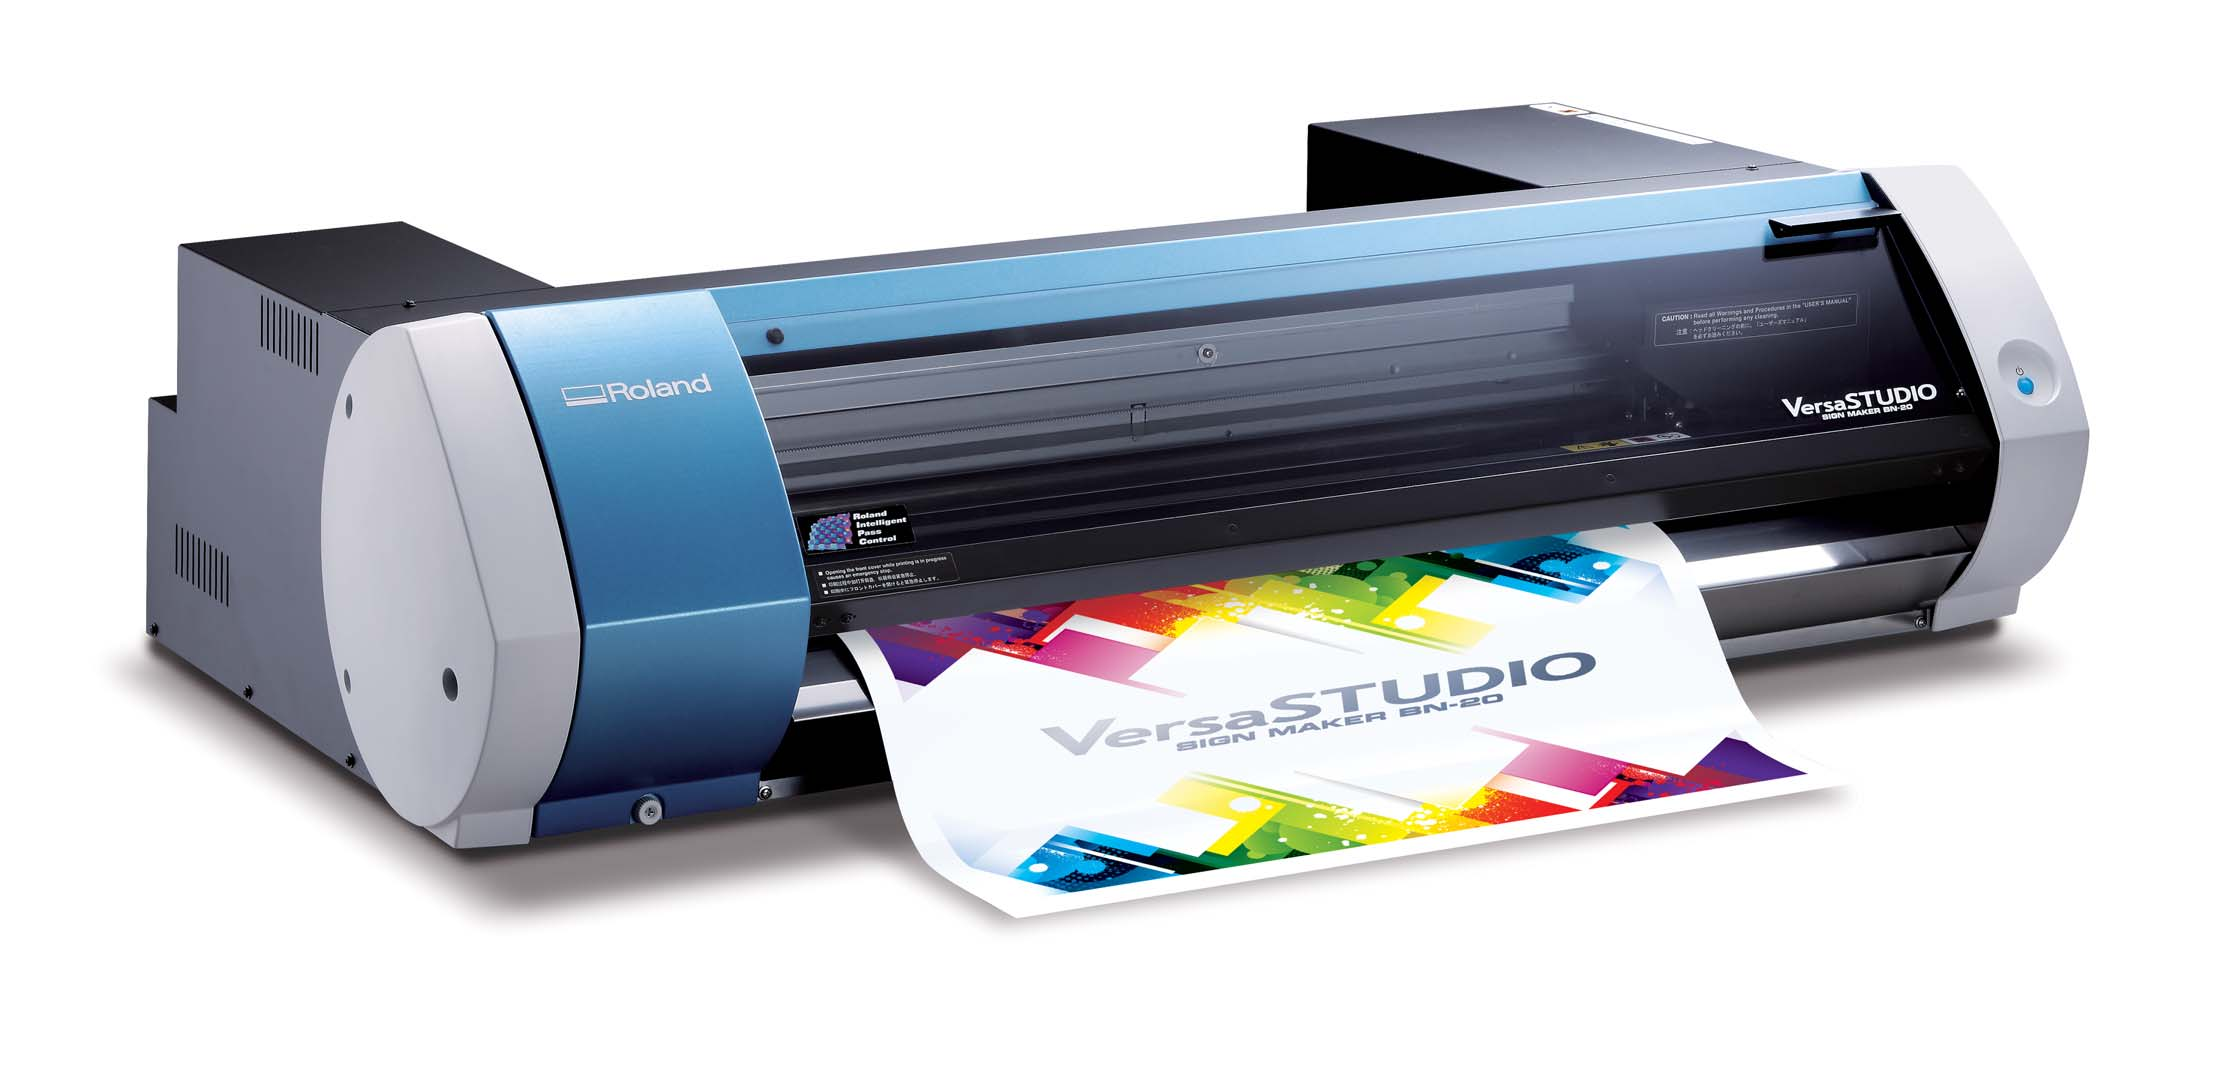 Roland Launches New Wide Format Printer Series The Recycler